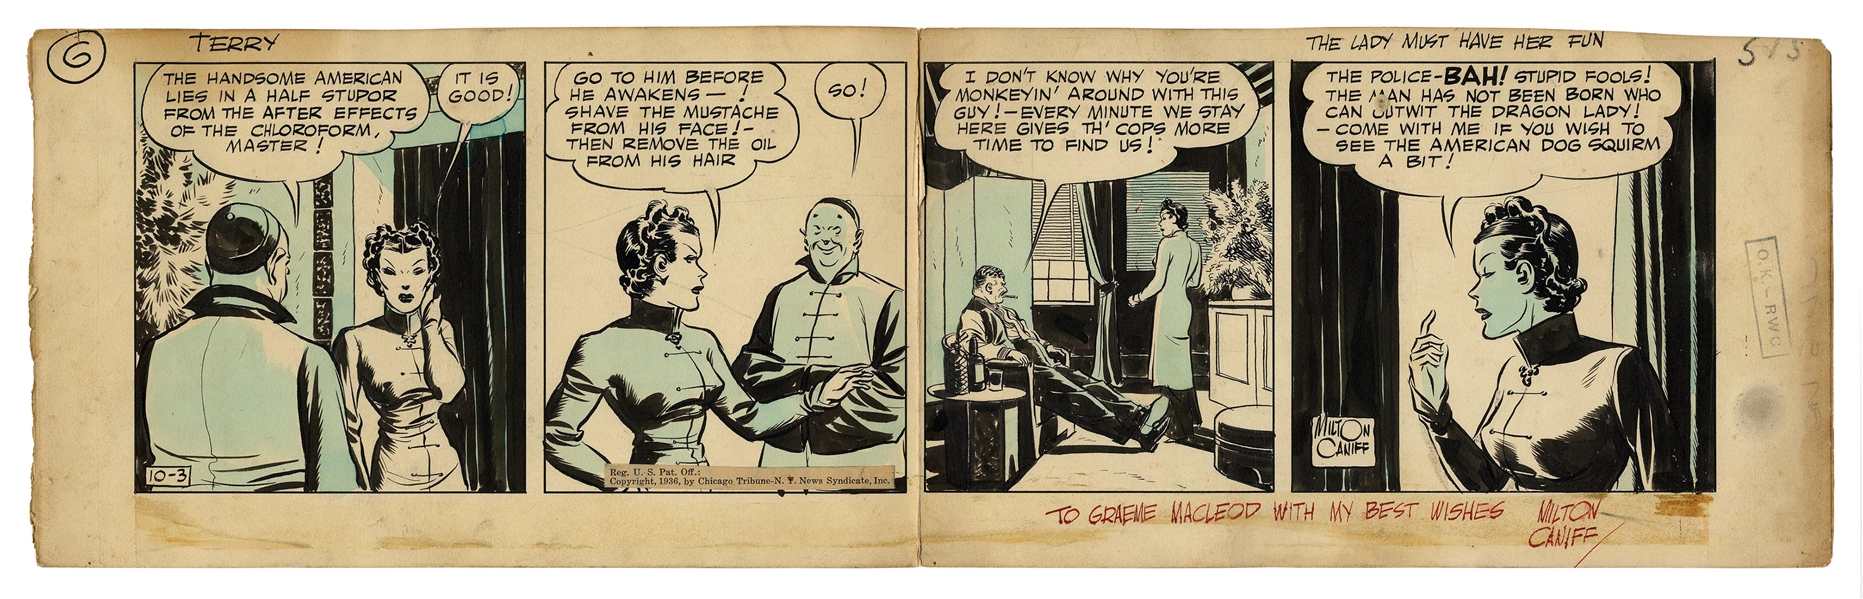 ''Terry and the Pirates'' Original Comic Strip by Milton Caniff From 1936 -- The Dragon Lady Has ''Her Fun'' by Drugging the ''Handsome American''